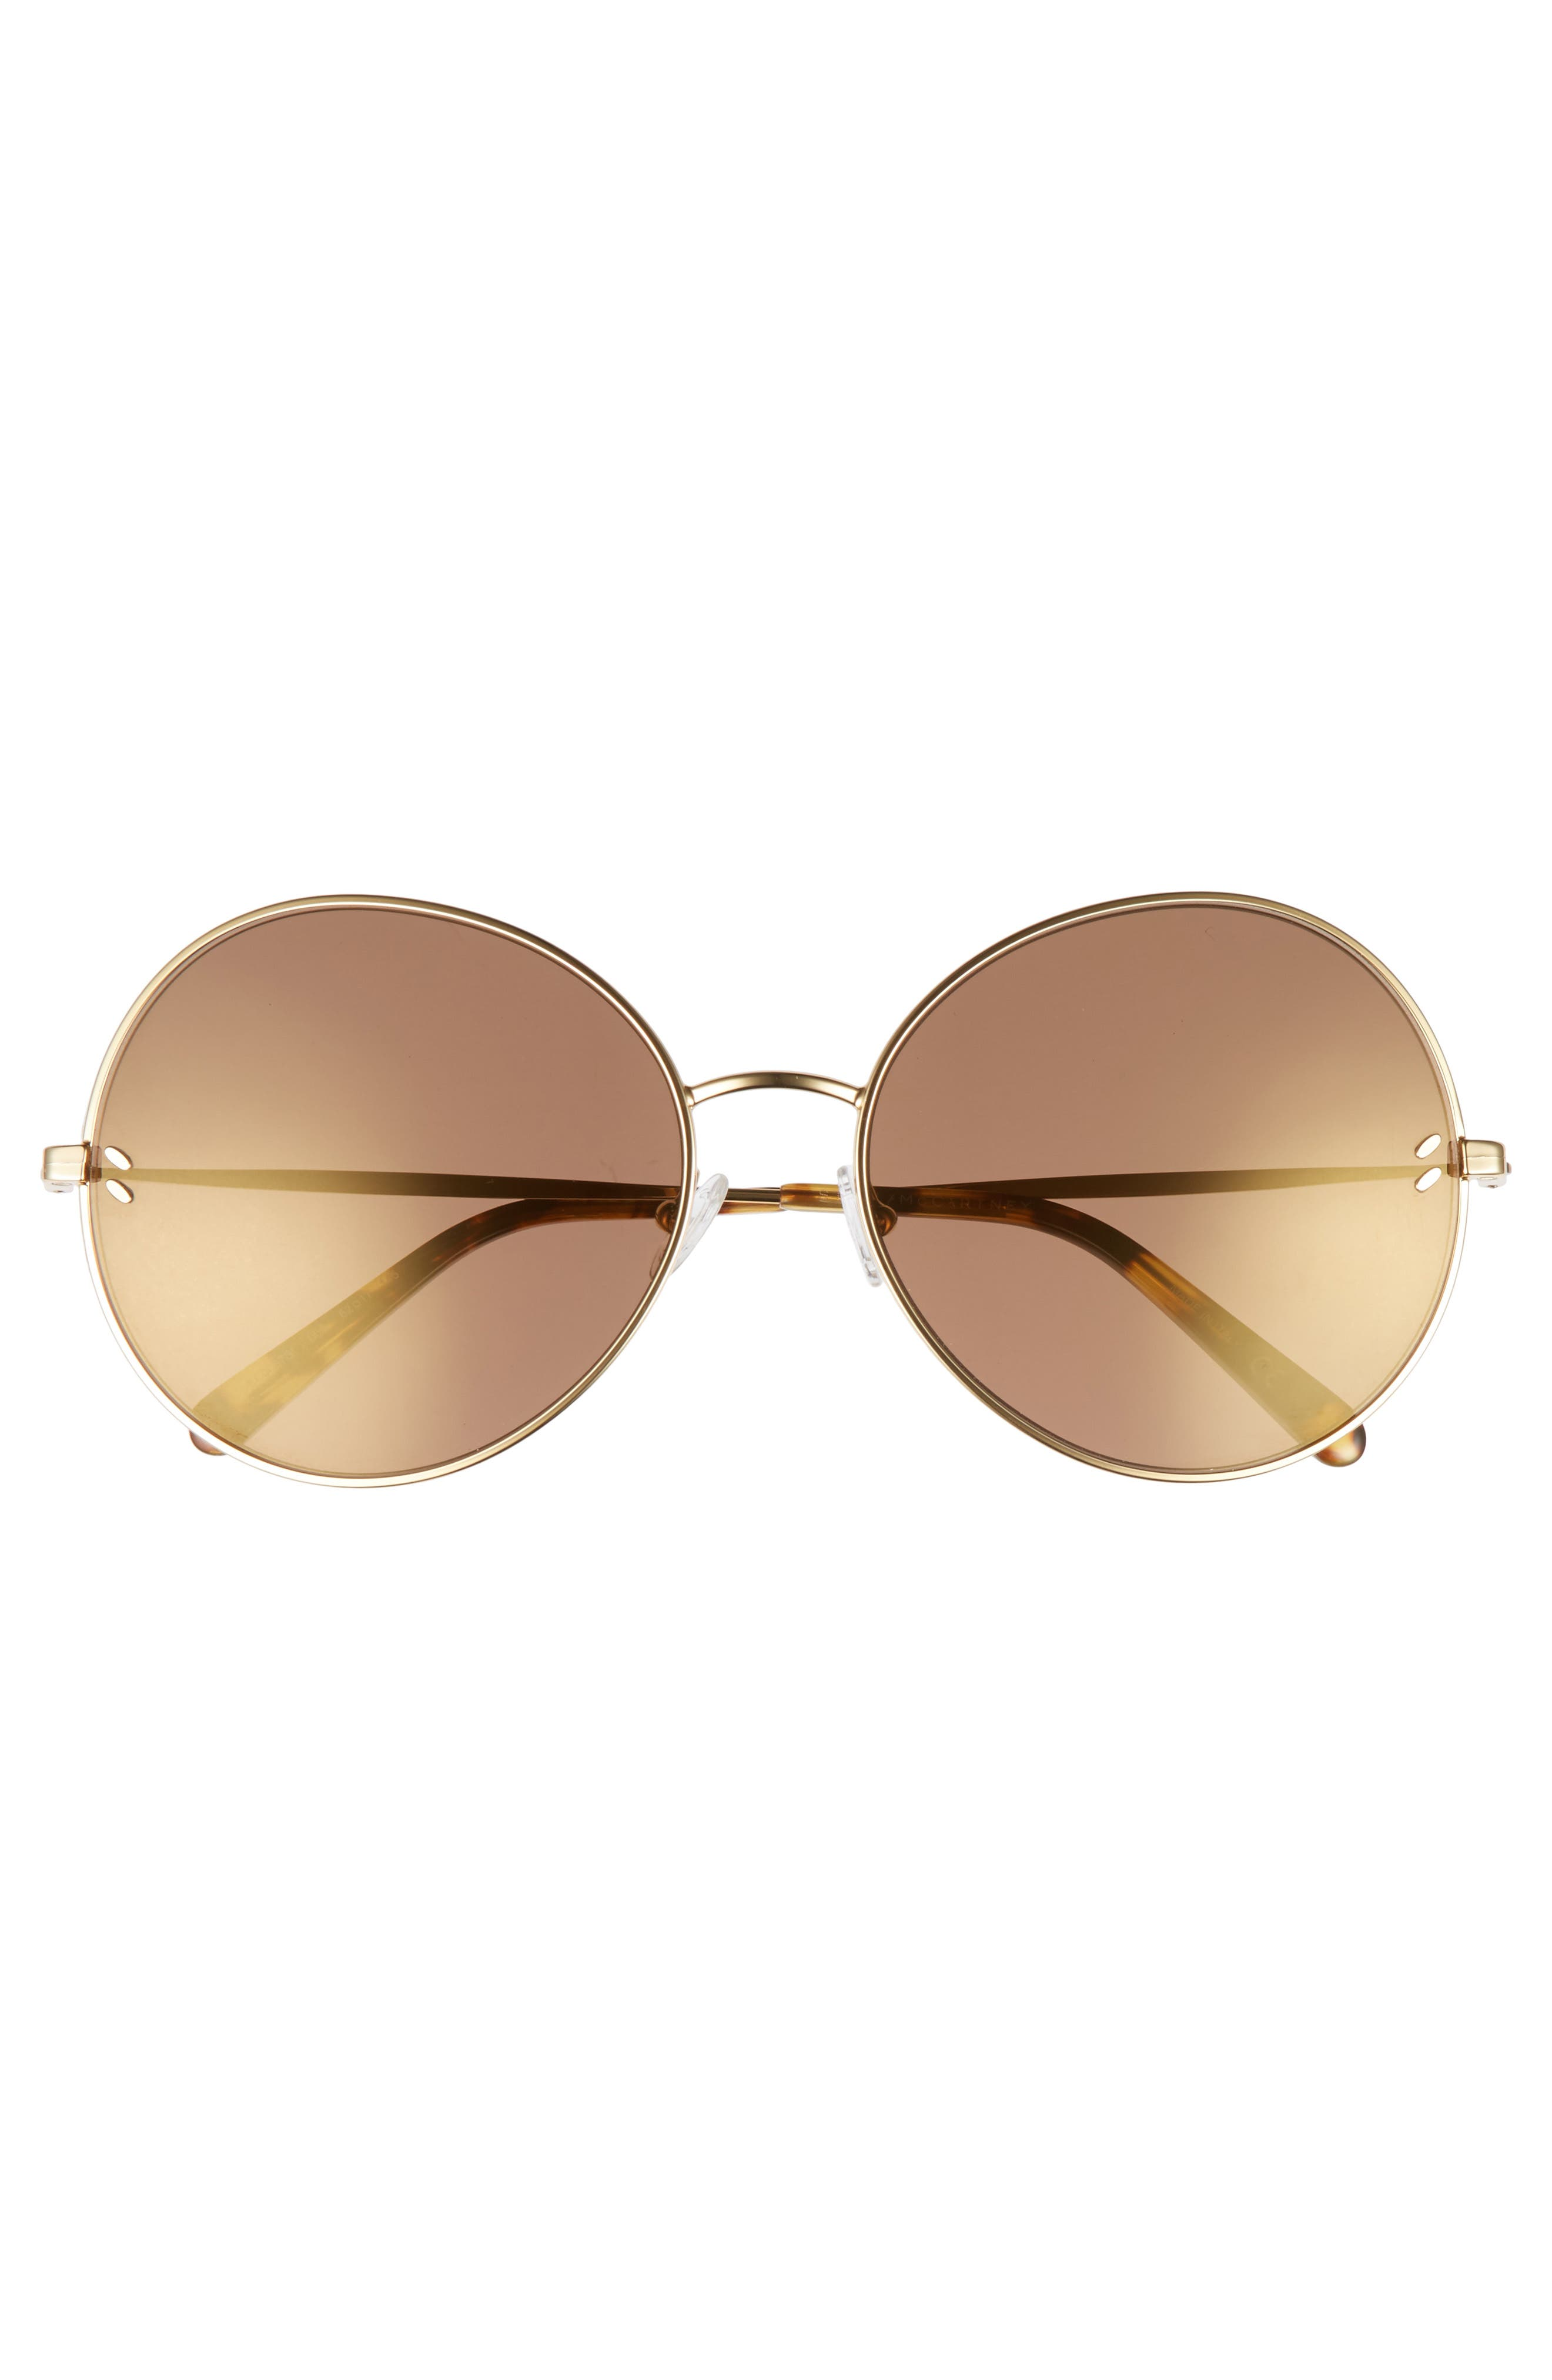 62mm Round Sunglasses,                             Alternate thumbnail 3, color,                             Gold/ Brown